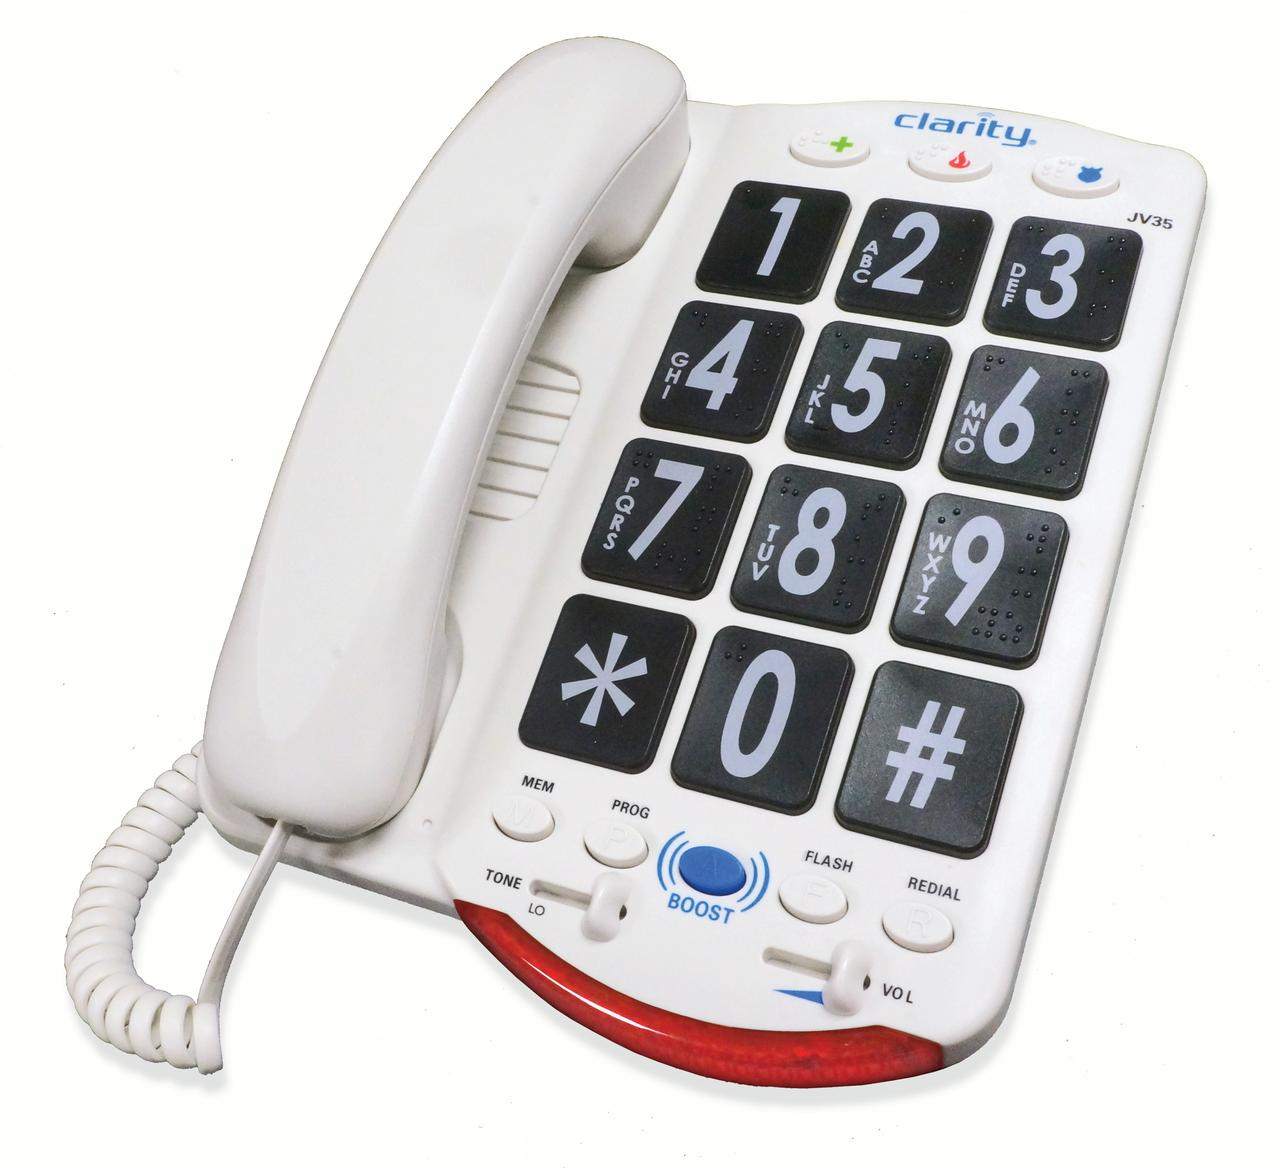 Clarity 76560.000 JV35 Moderate Hearing Loss Amplified Corded Phone